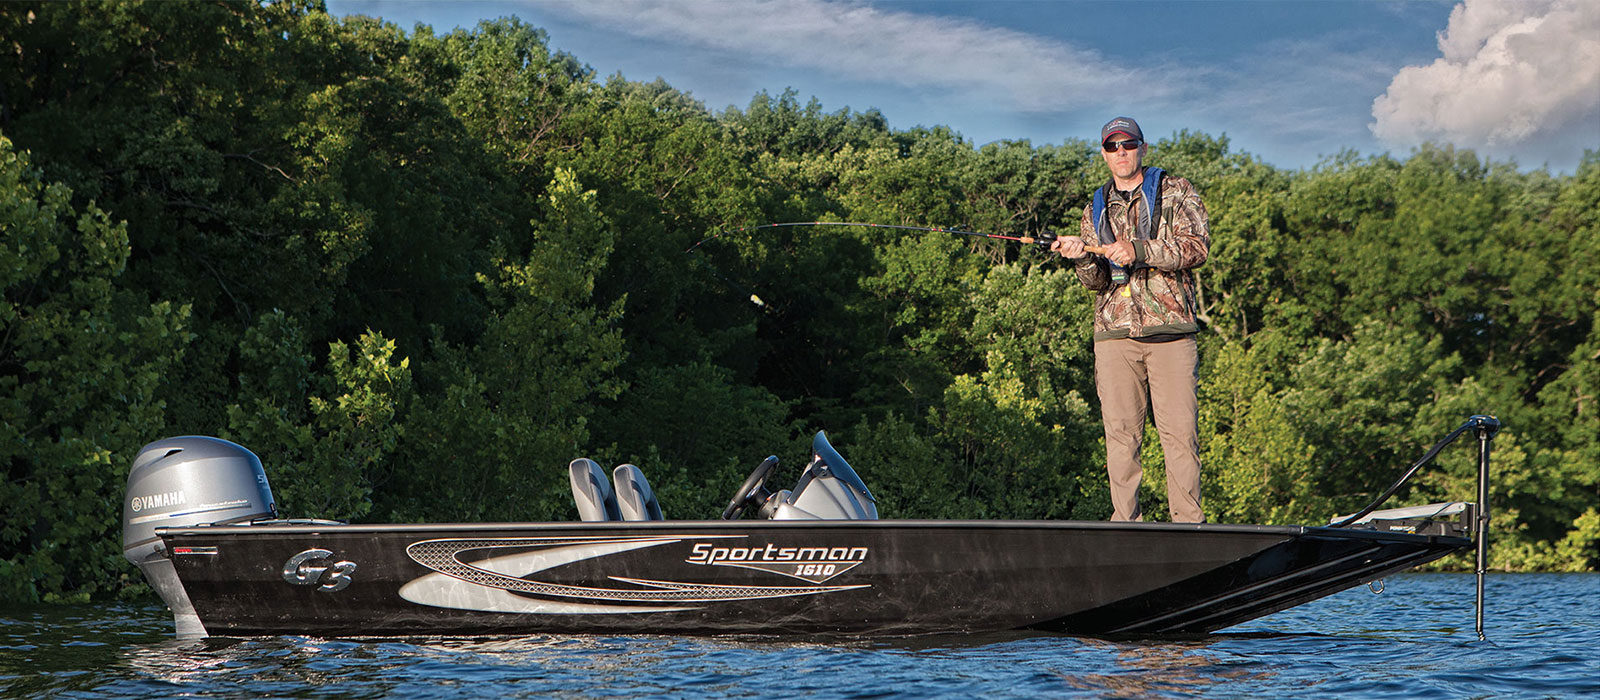 Sportsman Series G3 Boats